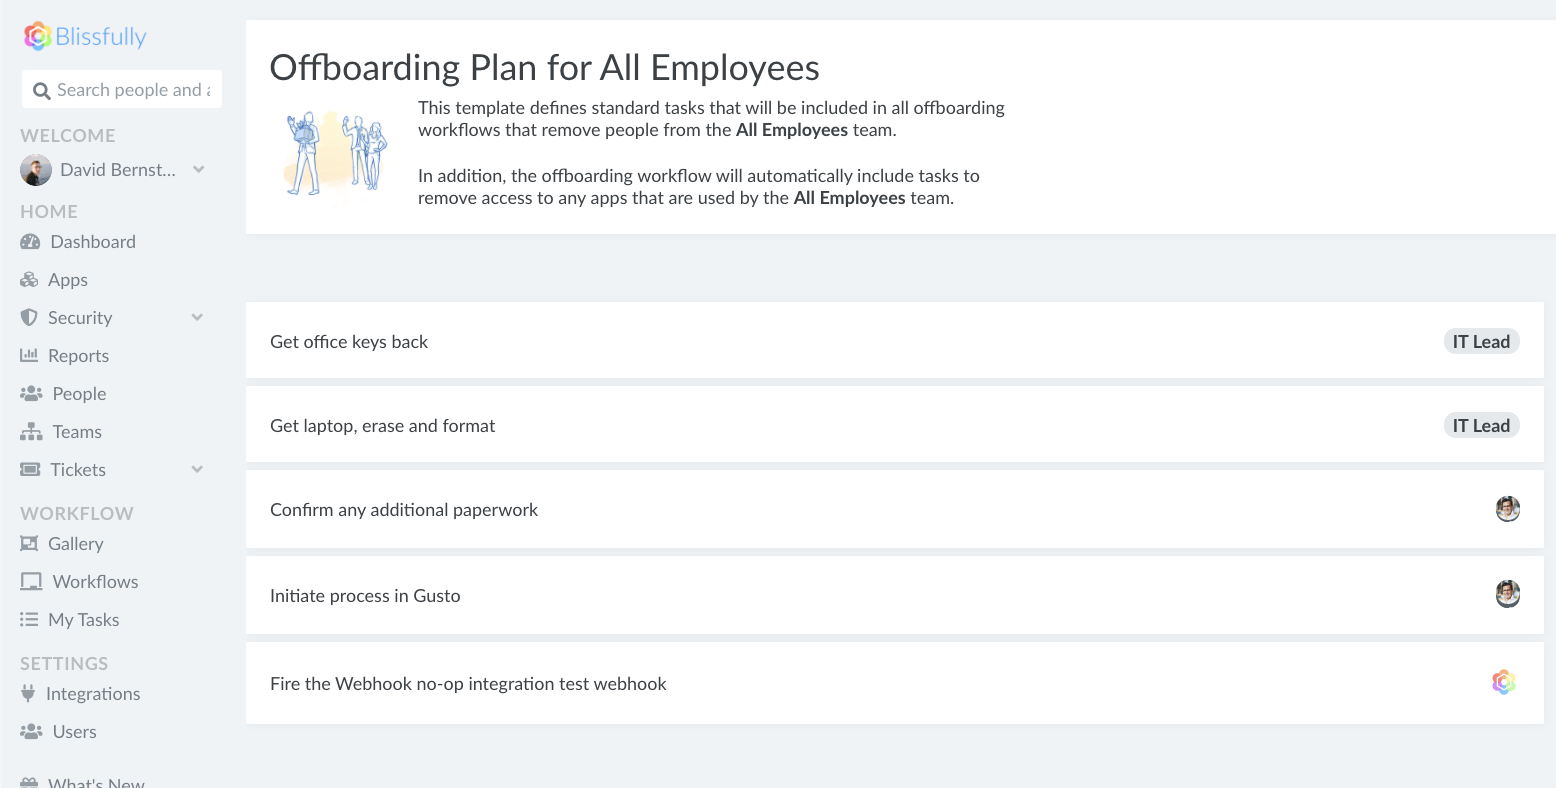 SaaS Waste and Employee Offboarding Management with Blissfully